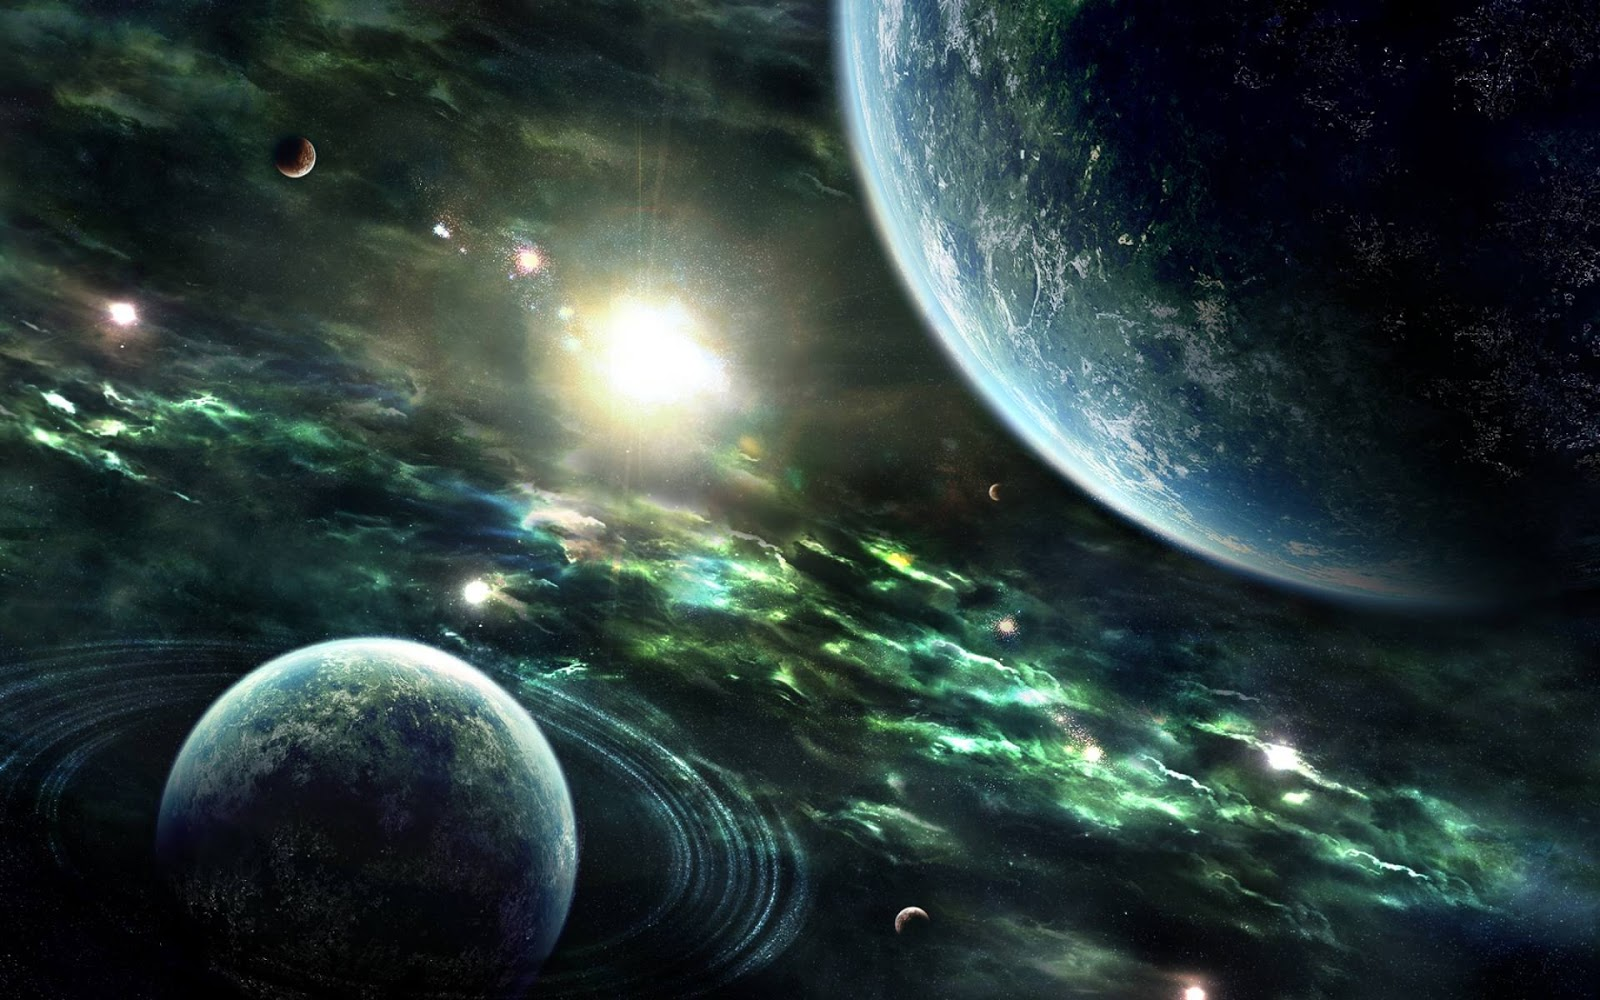 exploding planets wallpapersfor laptops - photo #30